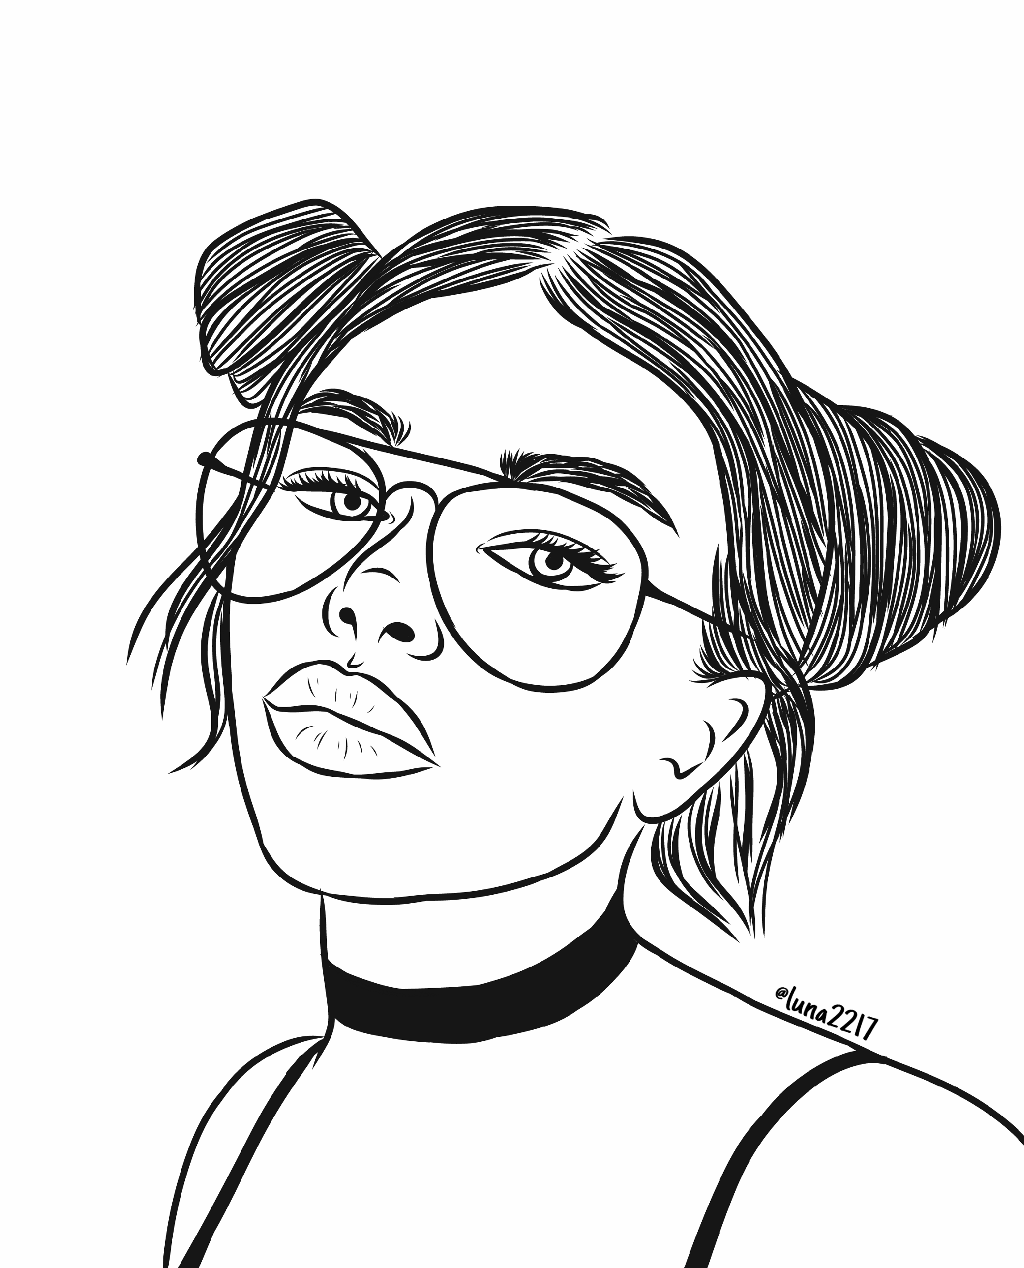 Siins tumblr coloring pages ~ freetoedit drawing girl outlines outlinedrawing tumblr...